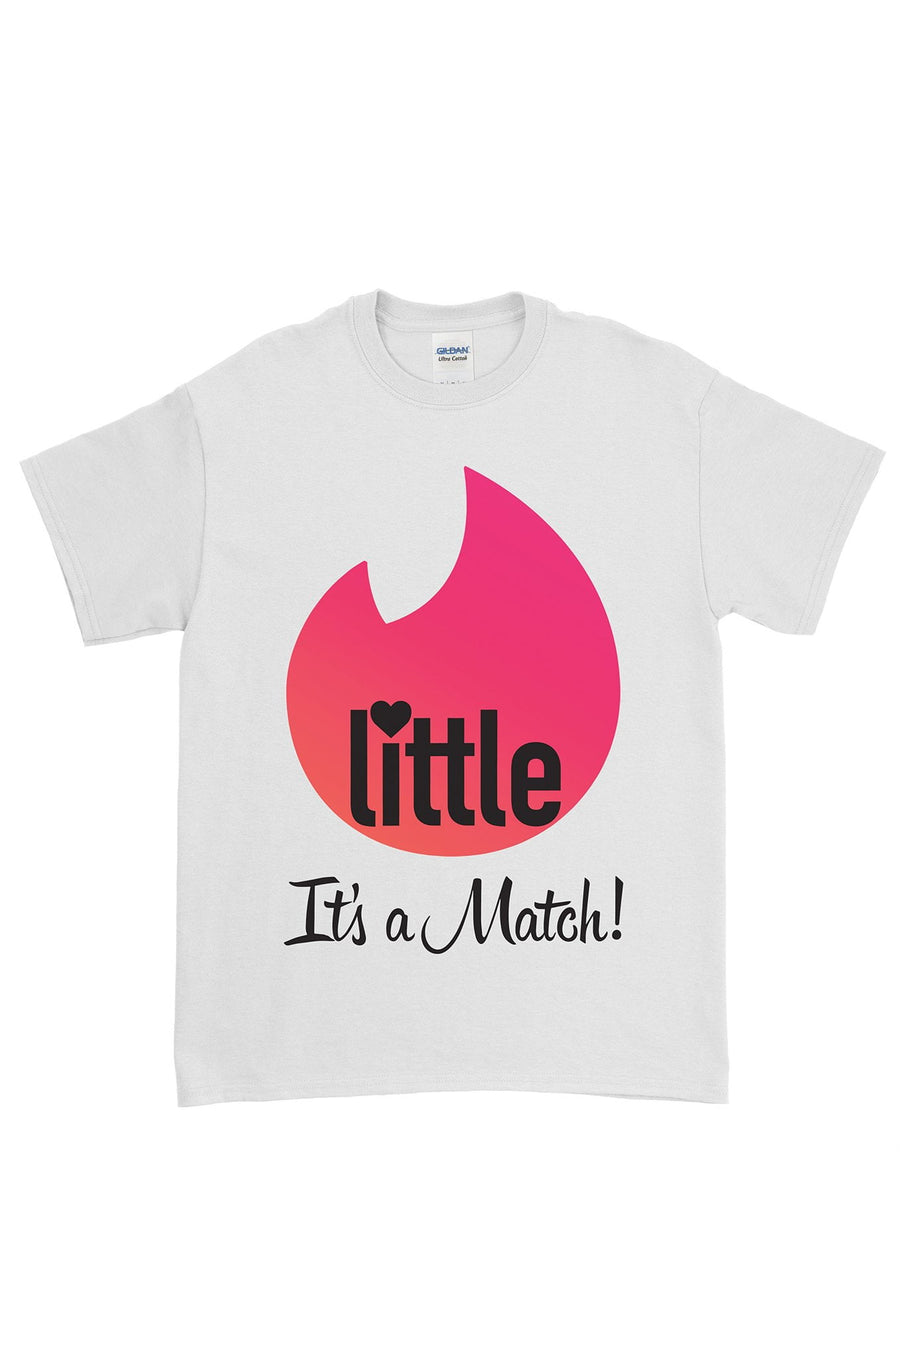 Big Little Tinder - It's a Match White Gildan Short Sleeve